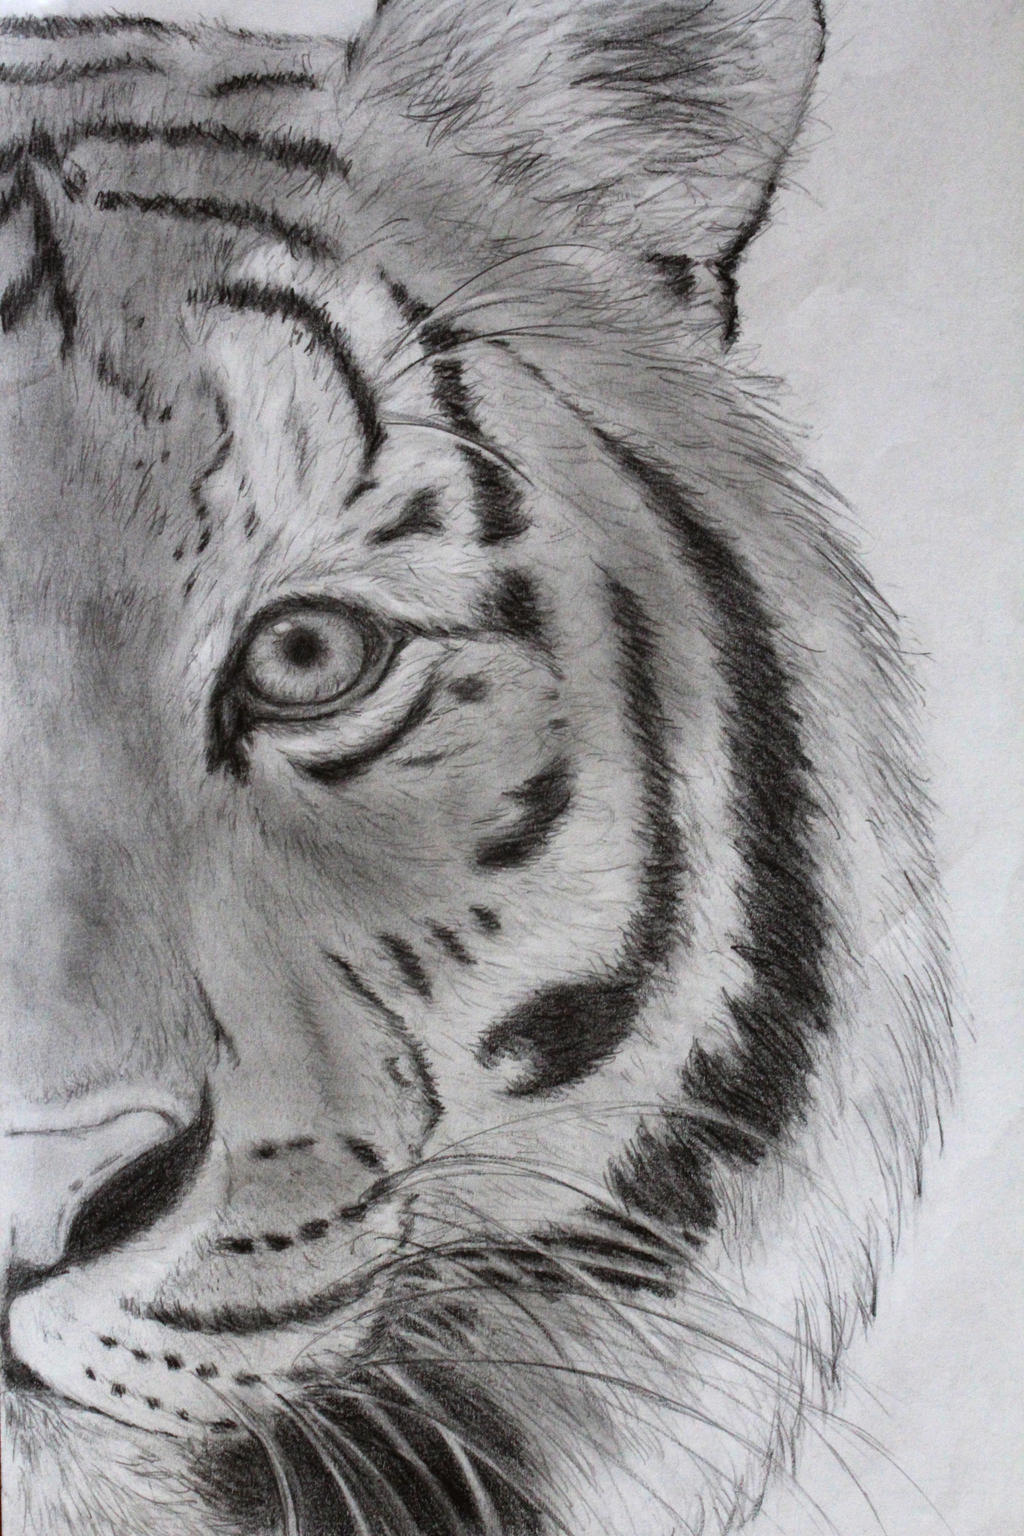 Old tiger drawing. by Maddie-Marie on DeviantArt